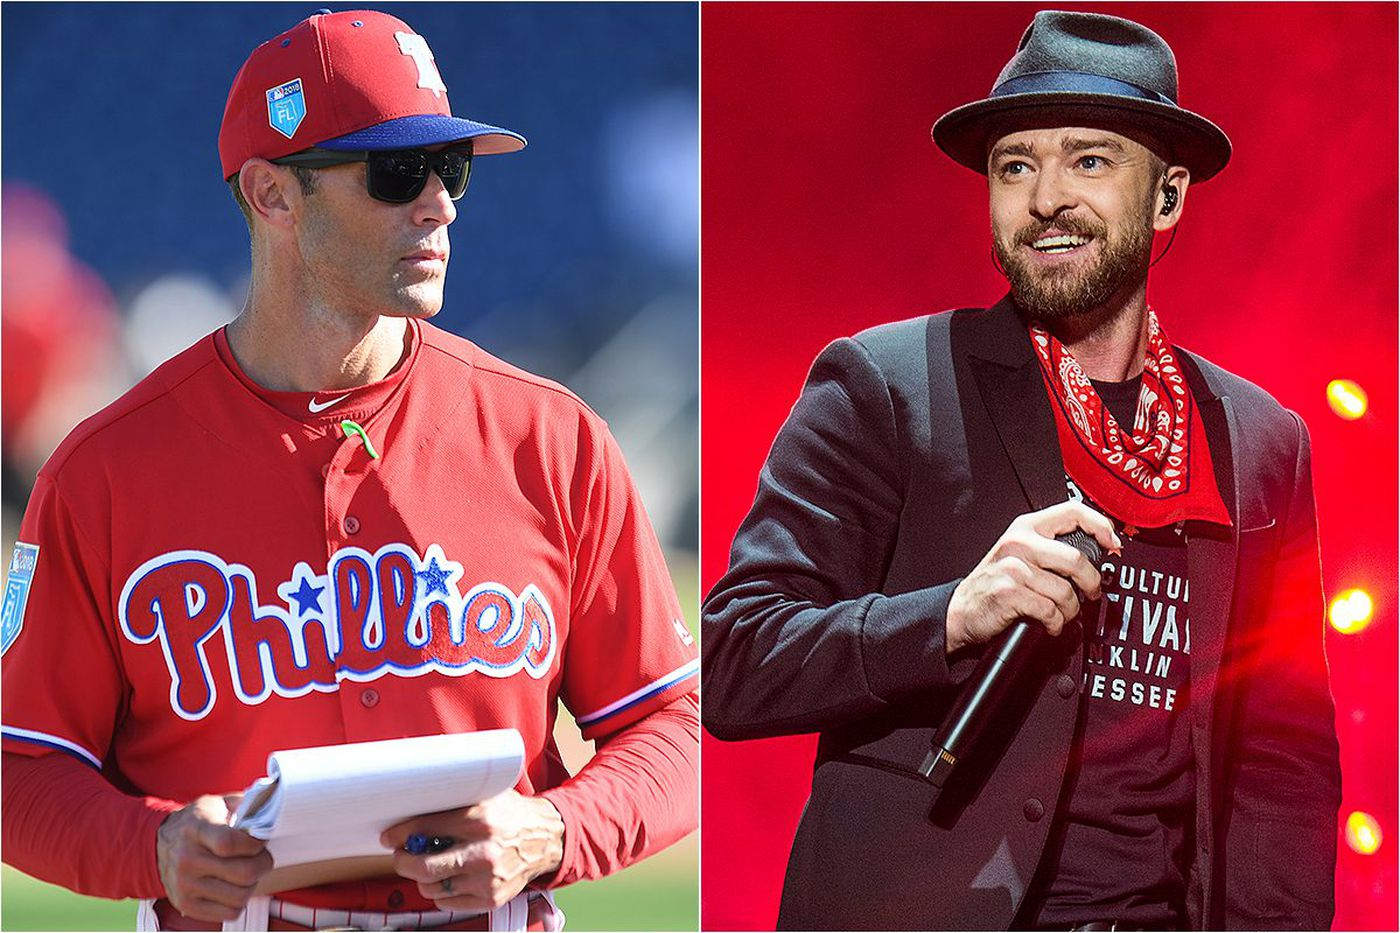 Justin Timberlake, Gabe Kapler, and how the Phillies aim to 'Be Bold'